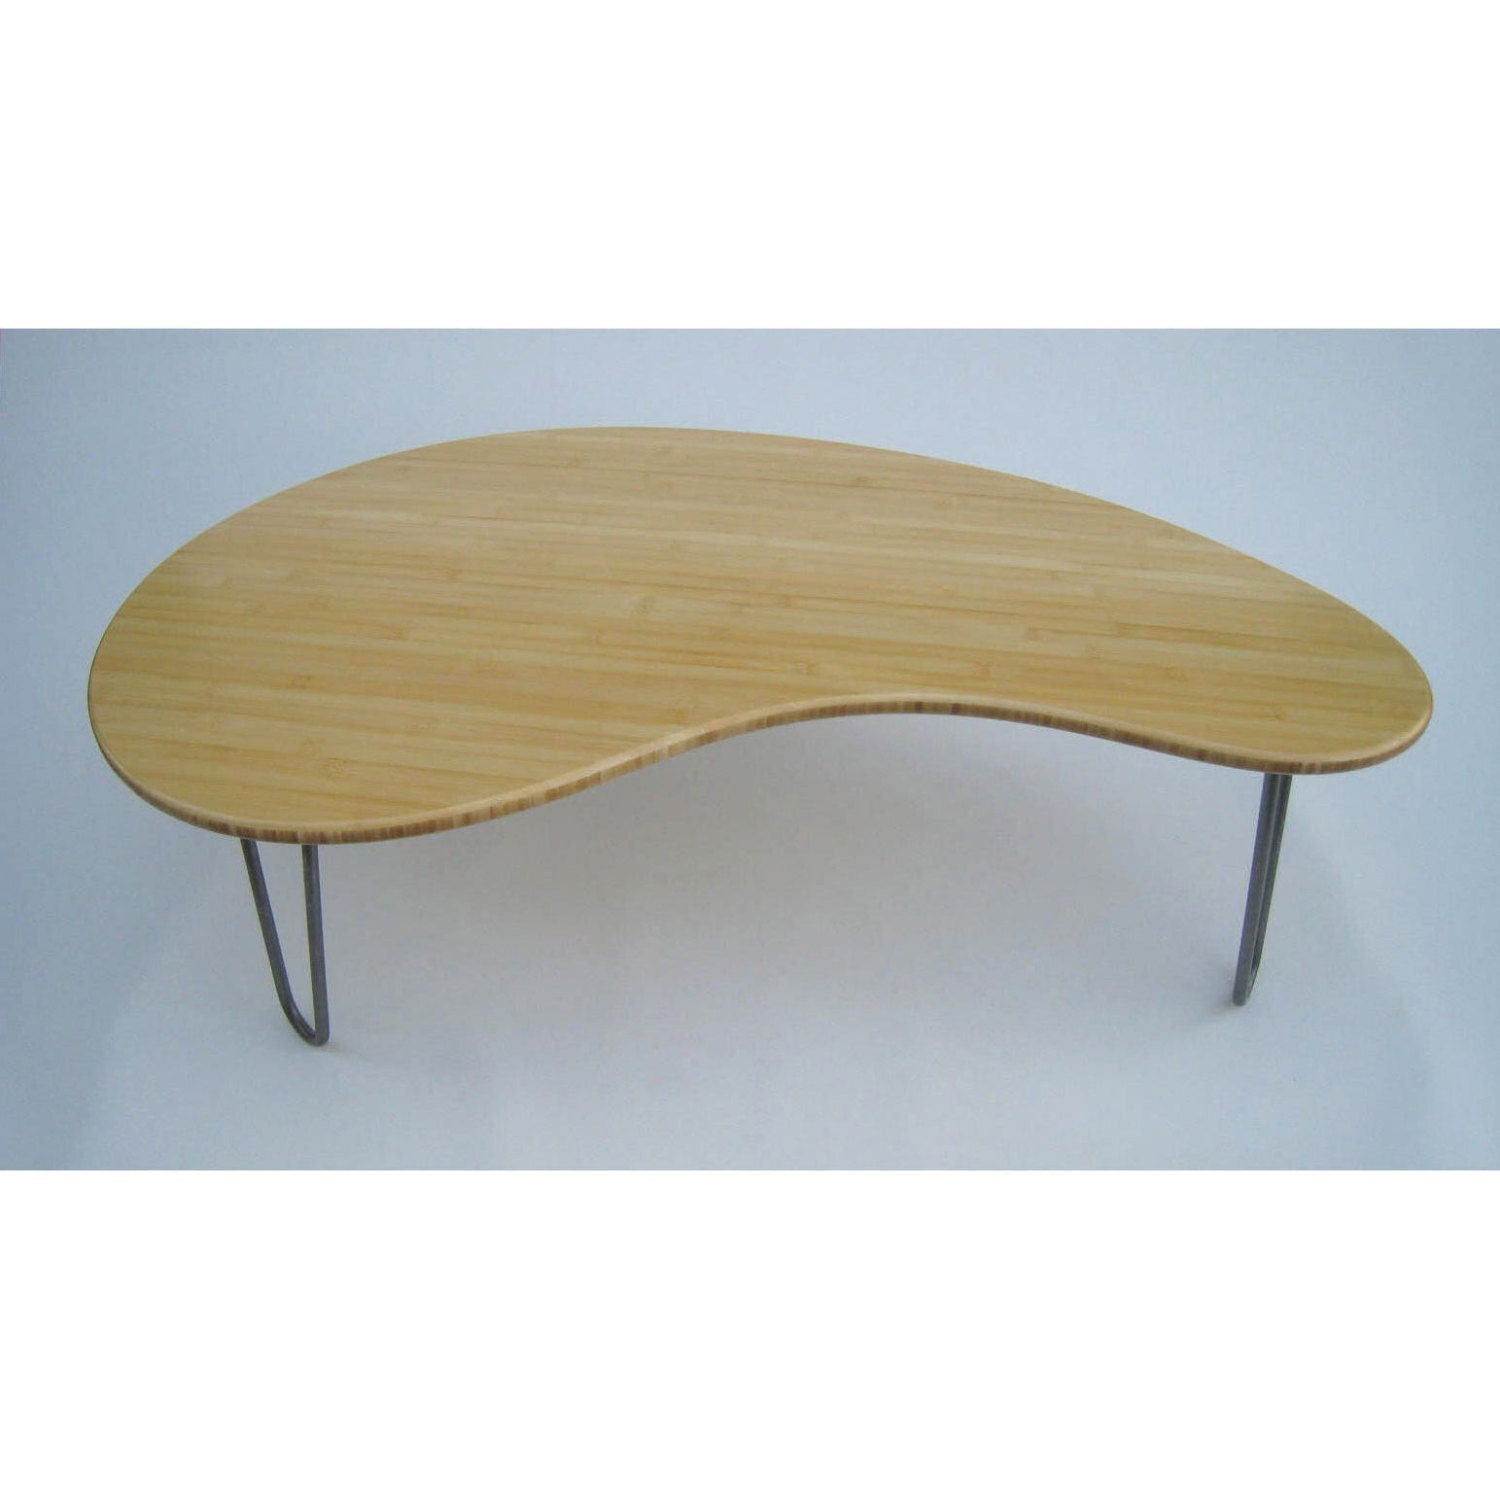 Mid Century Modern Coffee Table Kidney Bean Shaped Amorphic